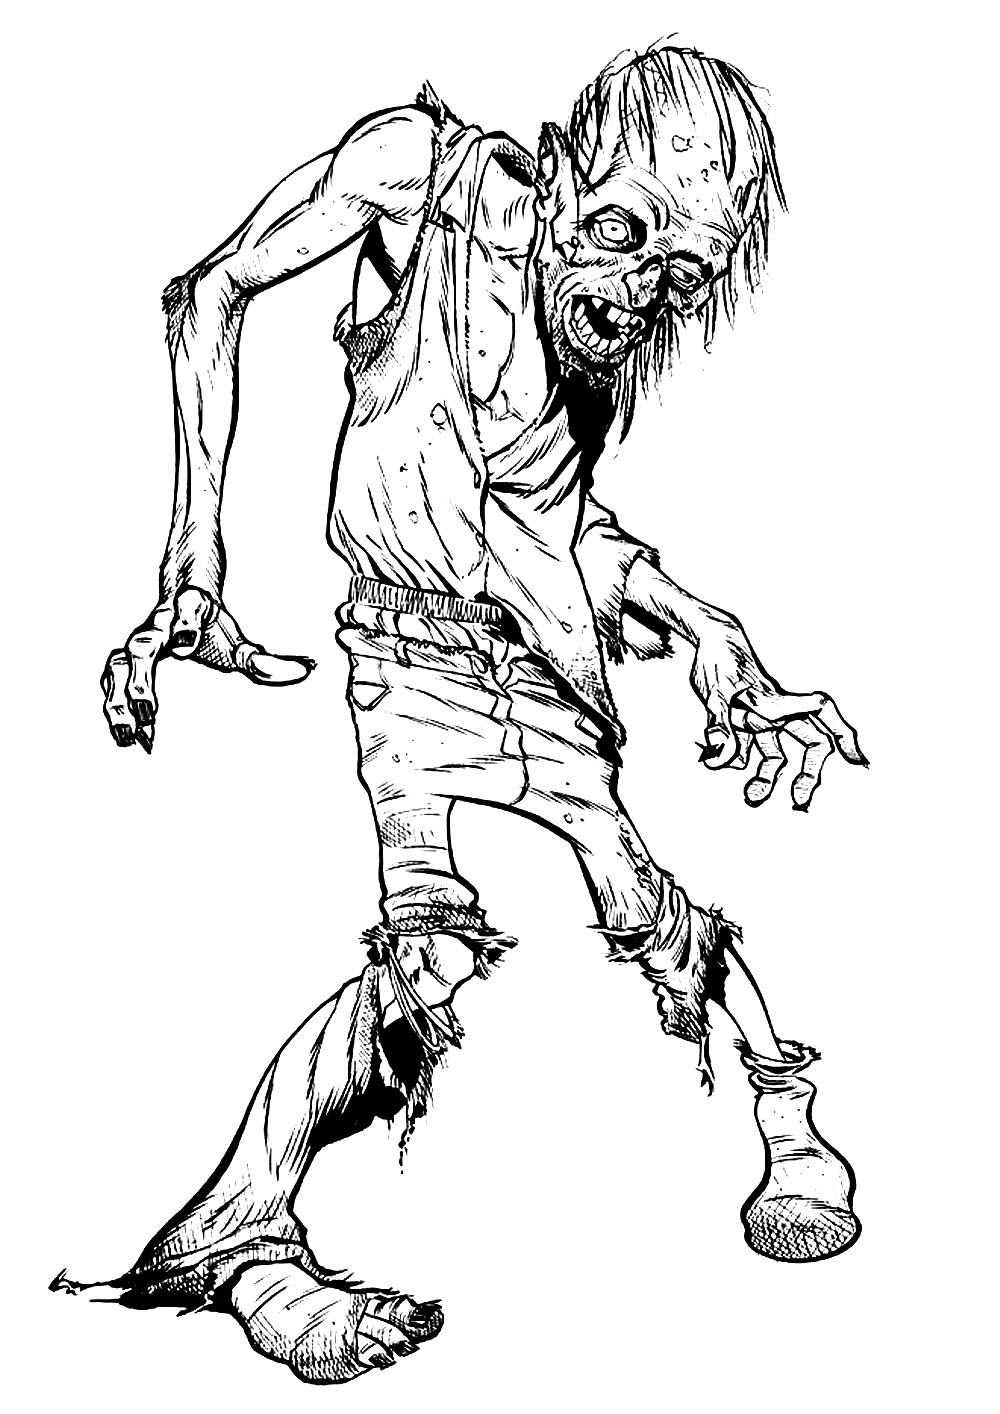 disney channel zombies coloring pages disney zombies addison coloring pages venust drawing channel pages coloring zombies disney